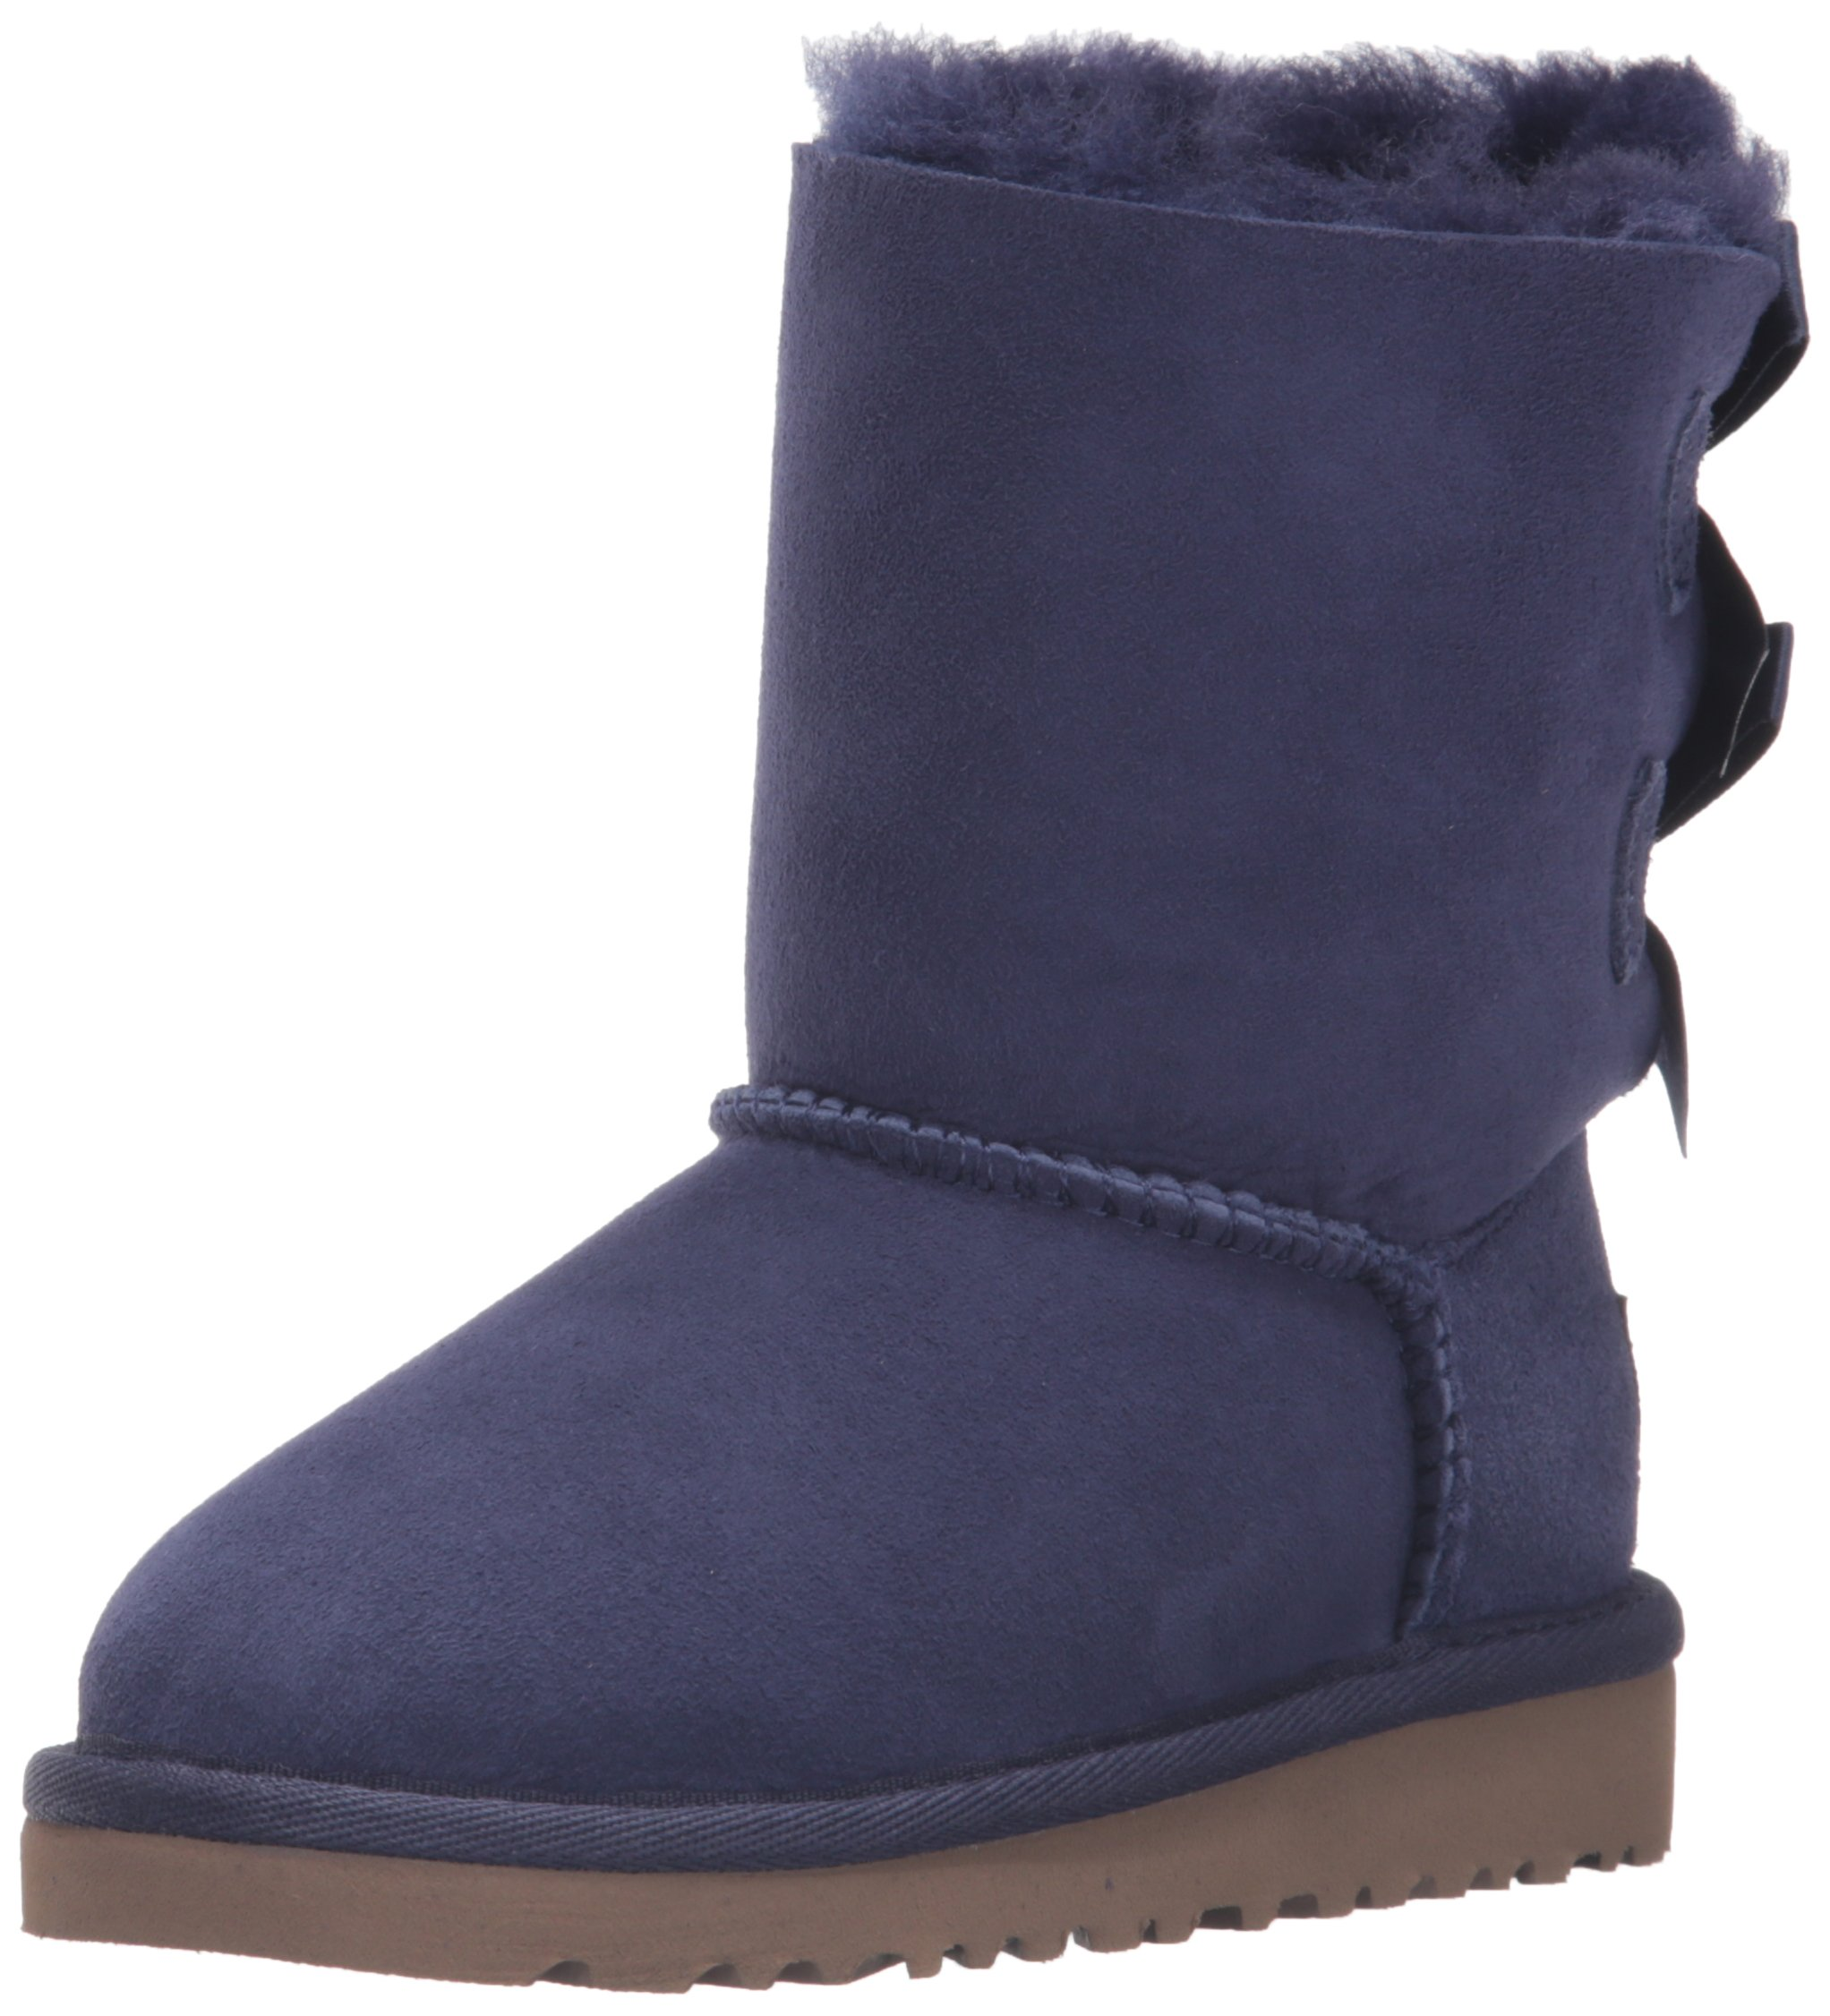 UGG Girls' Bailey Bow-K, Solid Peacoat, 7 M US Toddler